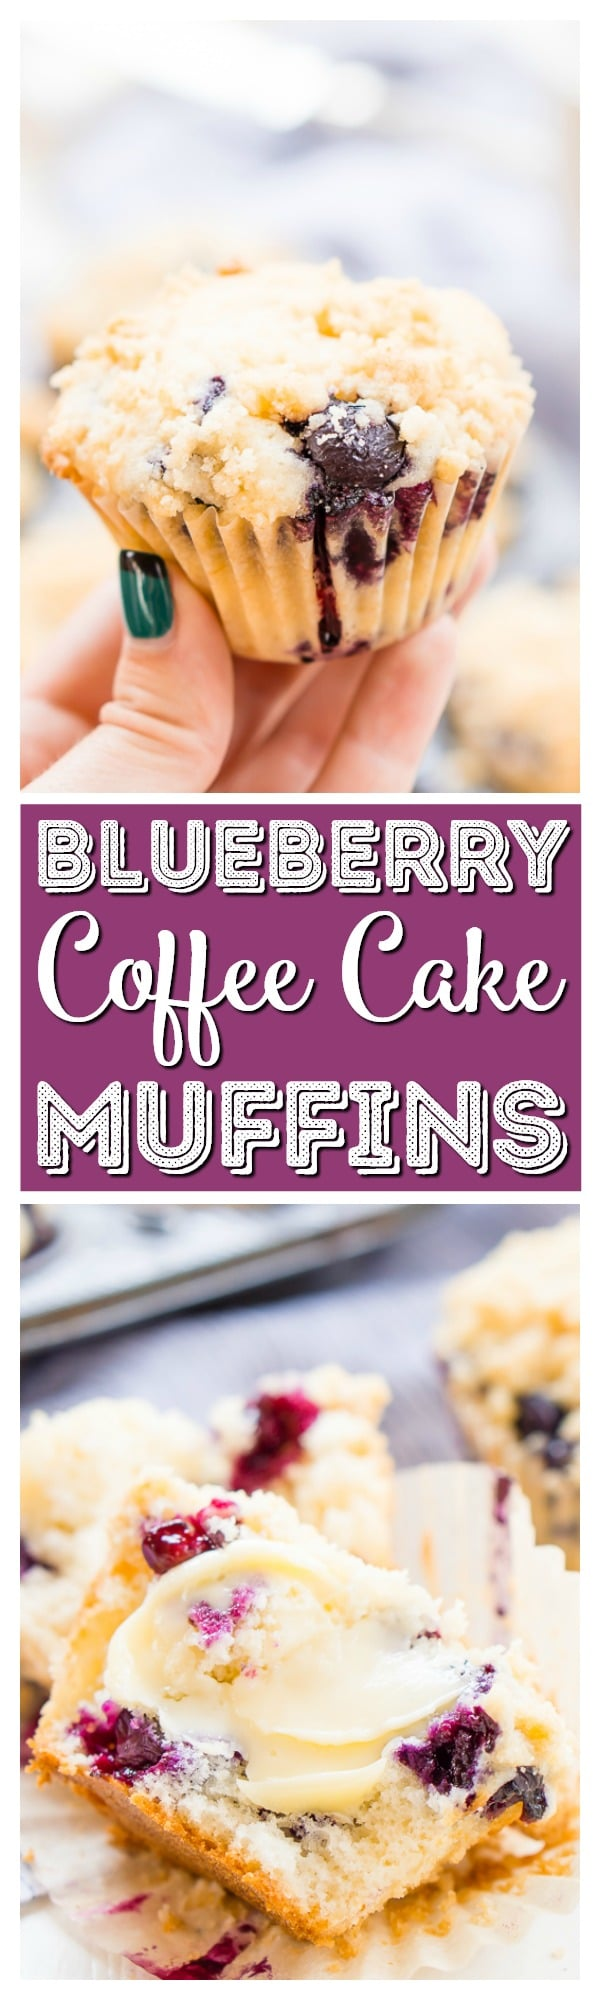 Blueberry Muffins are made with tangy buttermilk and delicious blueberries for a yummy breakfast muffin topped with a sugary butter crumble. via @sugarandsoulco